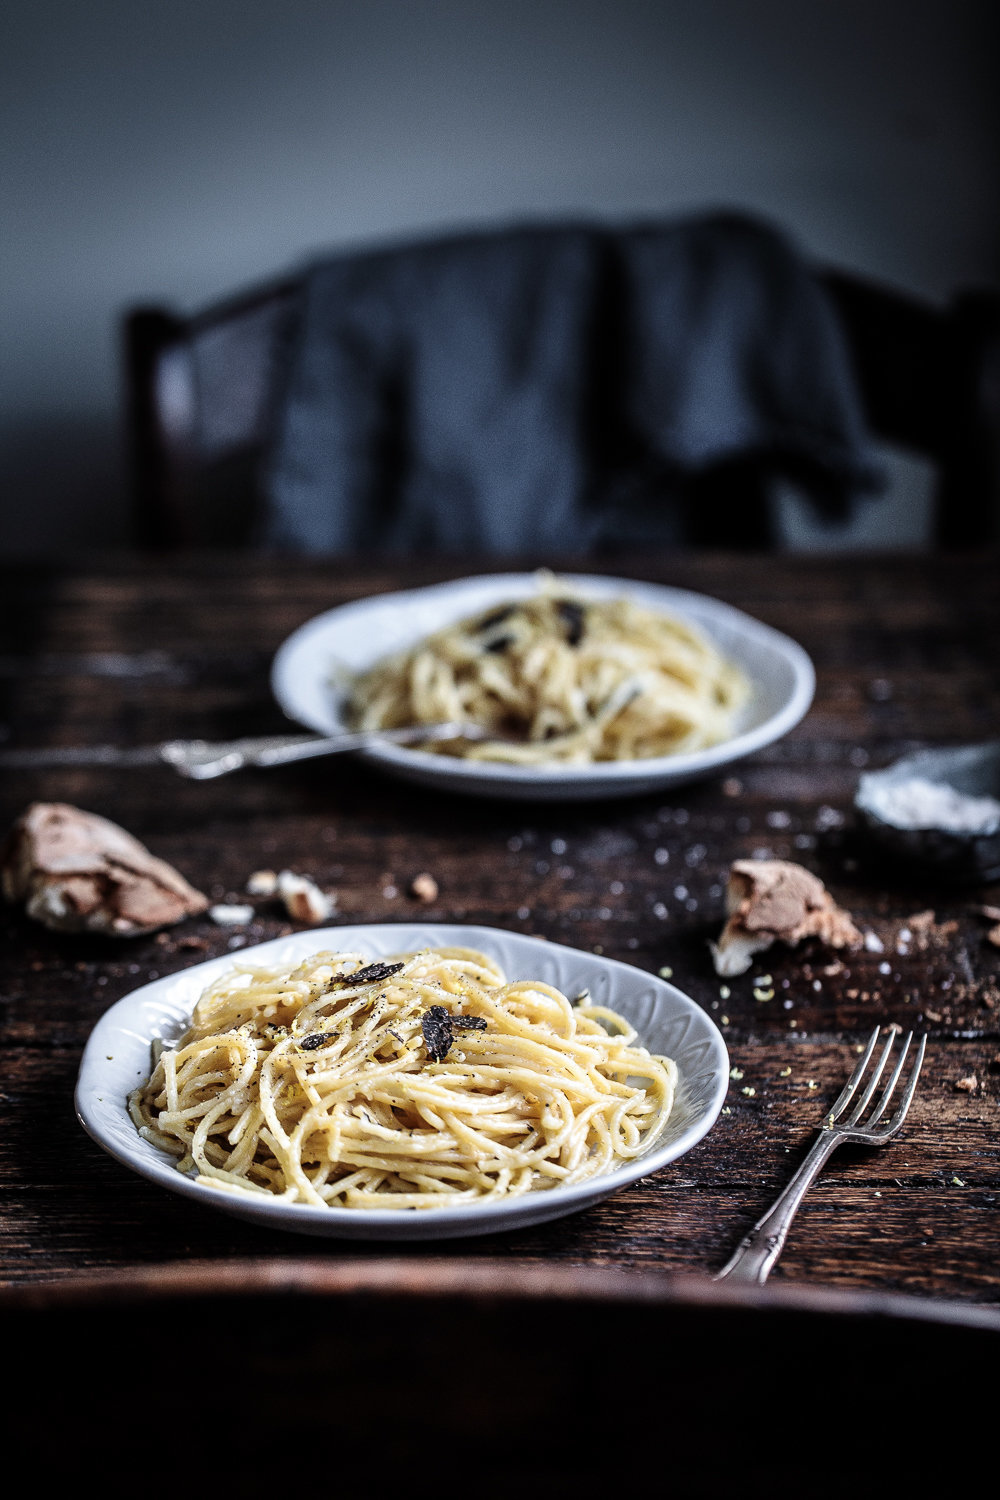 Spaghetti with Black Truffle, Parmigiano and Lemon | Anisa Sabet | The Macadames-11-10